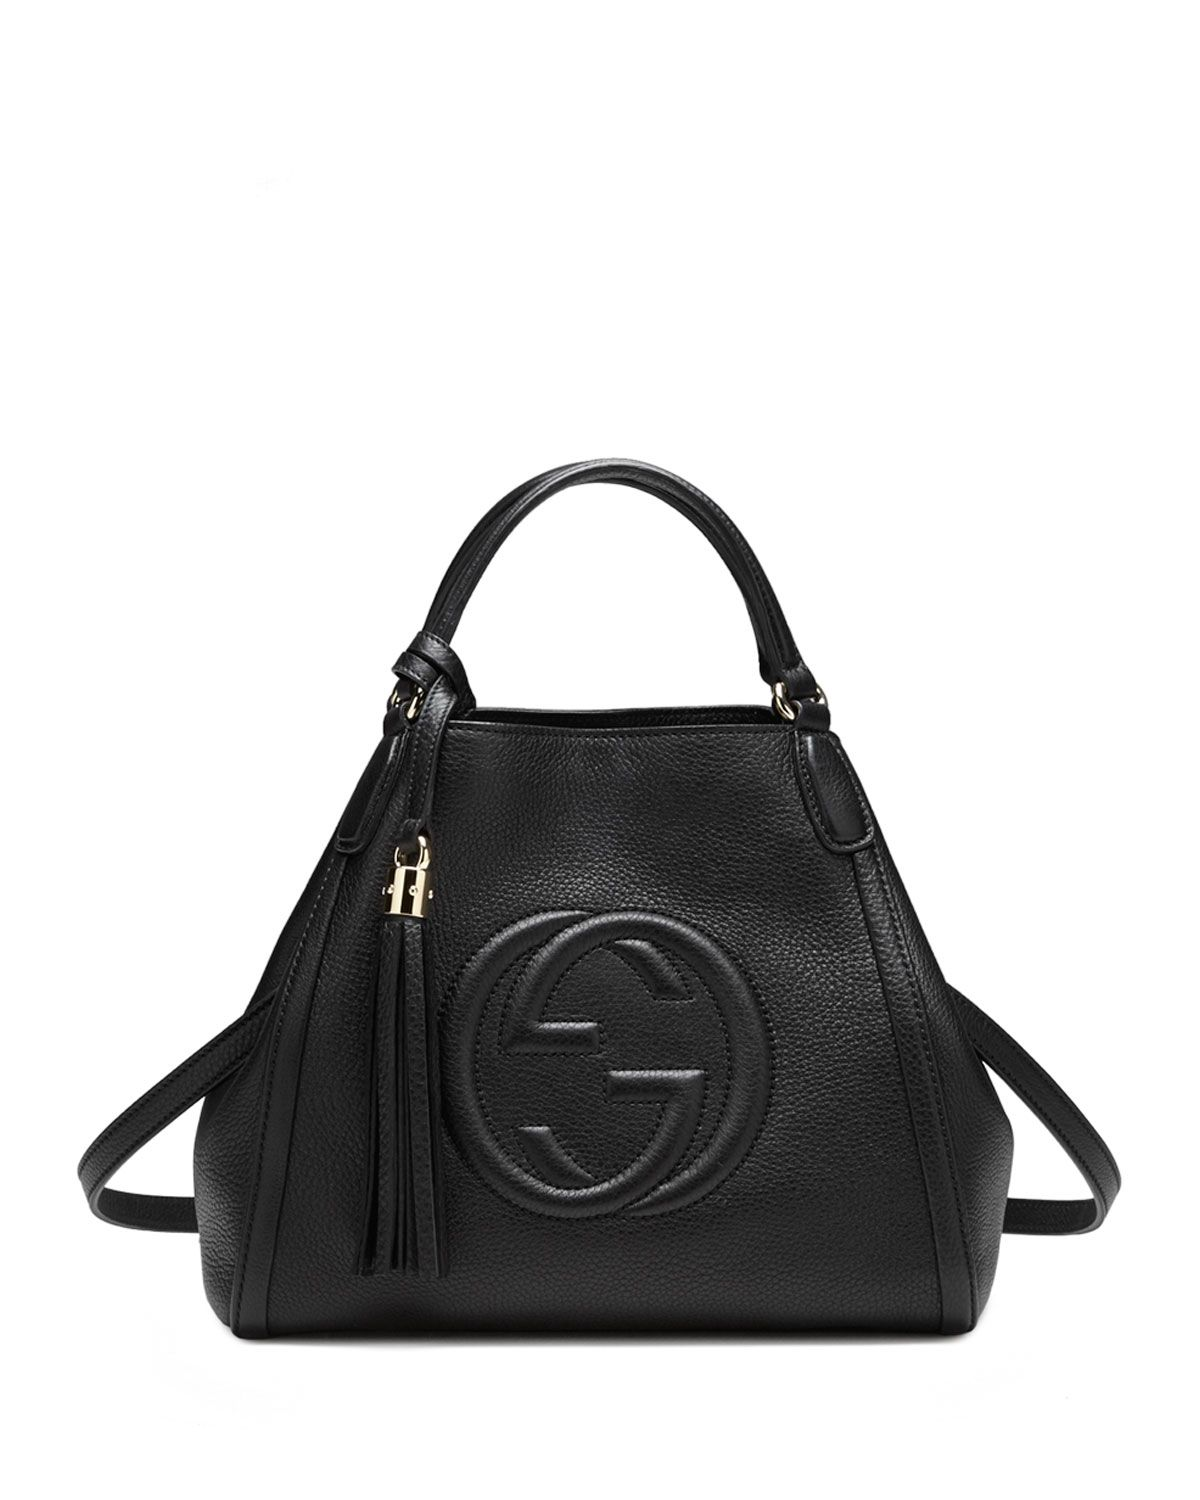 d544ce9be06 Gucci Soho Leather Shoulder Bag